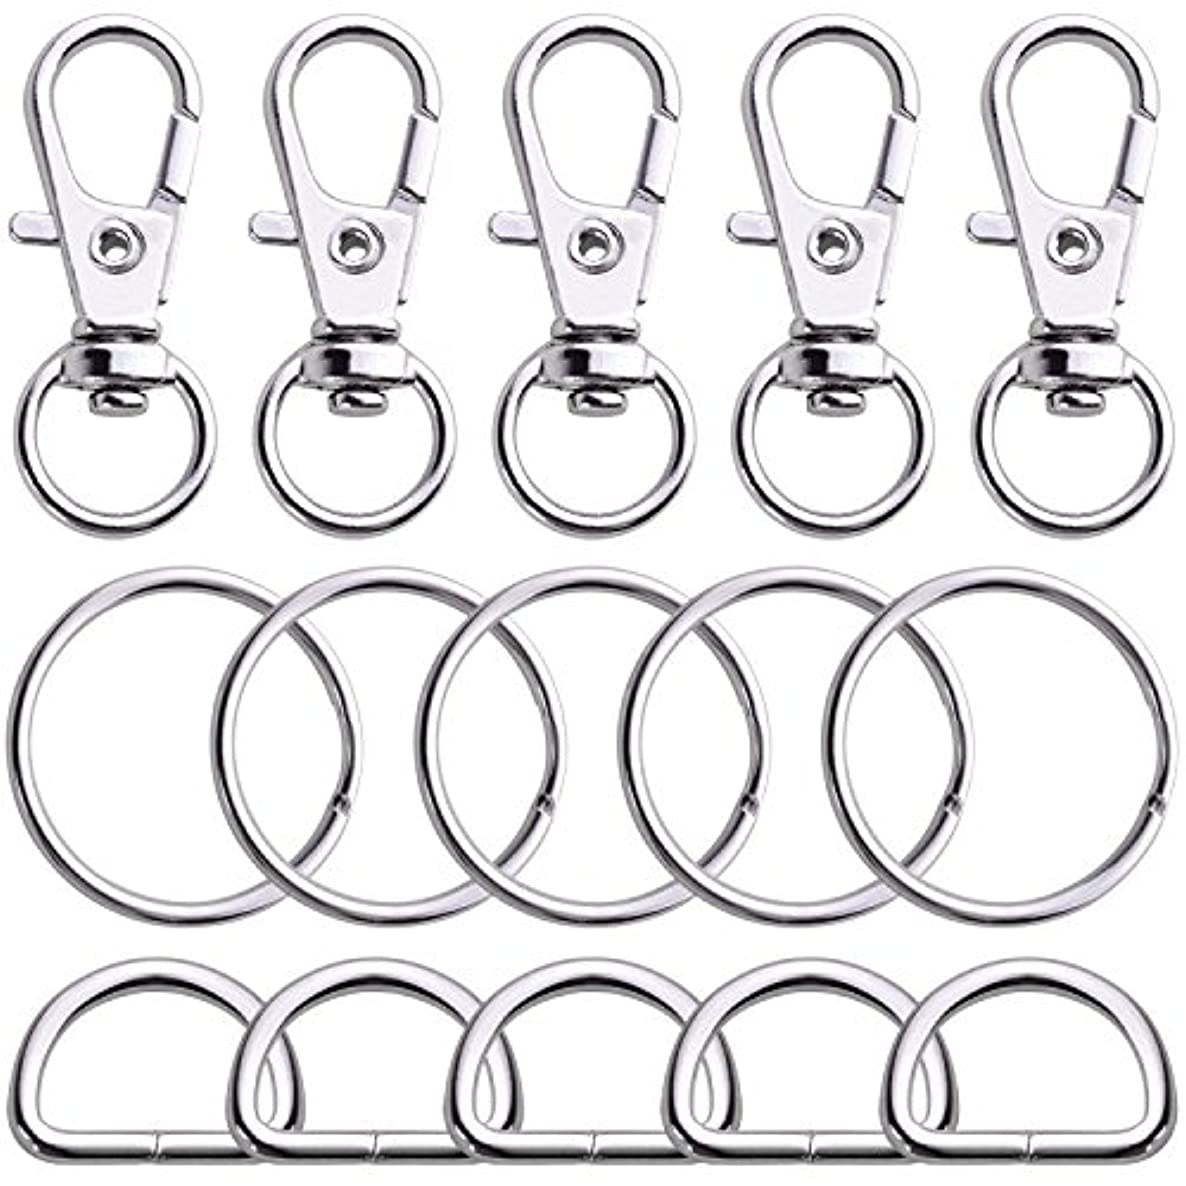 BronaGrand 100PCS Swivel Snap Lobster Clasps Keychain Hooks 20 Pieces with Key Rings 40 Pieces and D Rings 40pcs (Small Size)